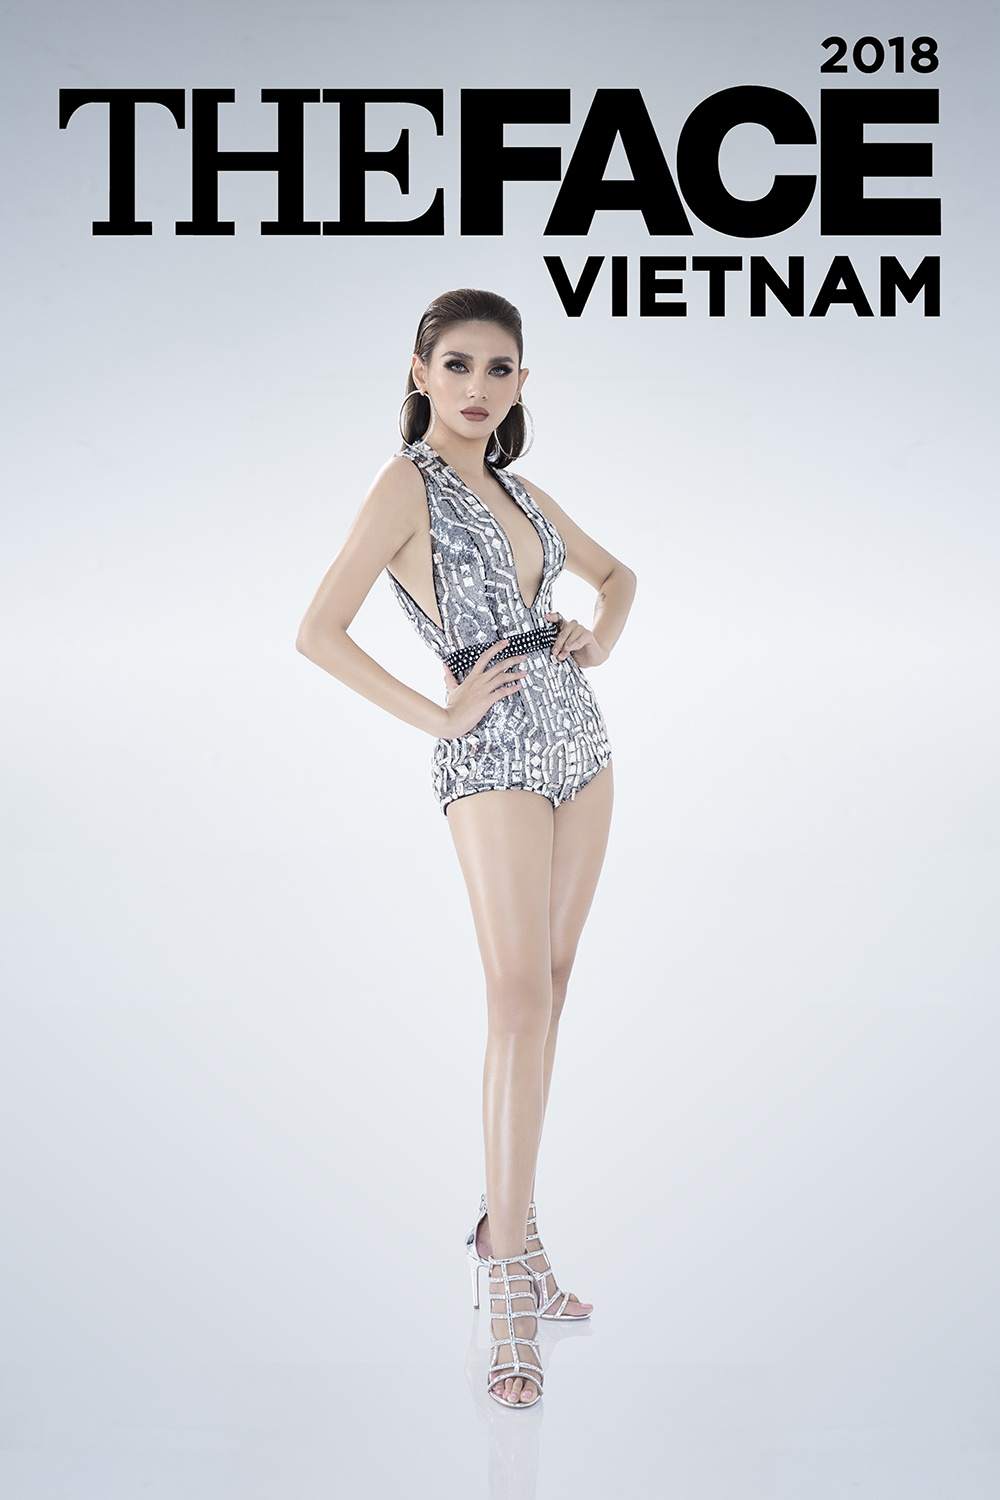 bo tu the face viet nam 2018 do ve sang chanh trong loat anh poster